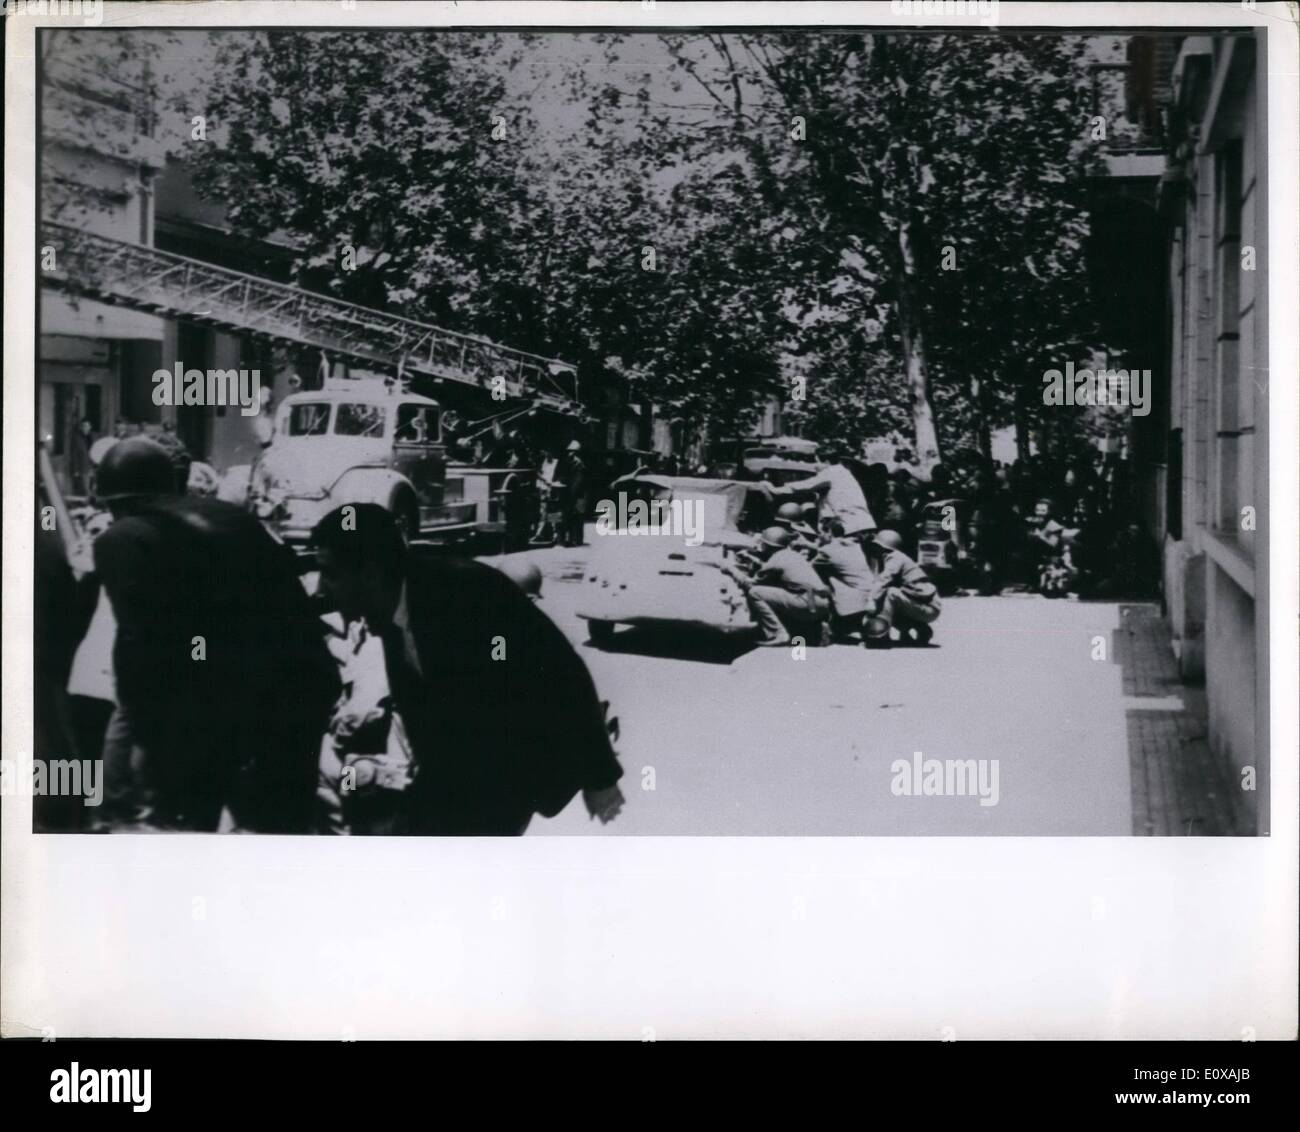 Nov. 11, 1965 - Uruguayan Police and Passers by Jumping for cover in gun Battle with are Gangsters. ne Pi - Stock Image